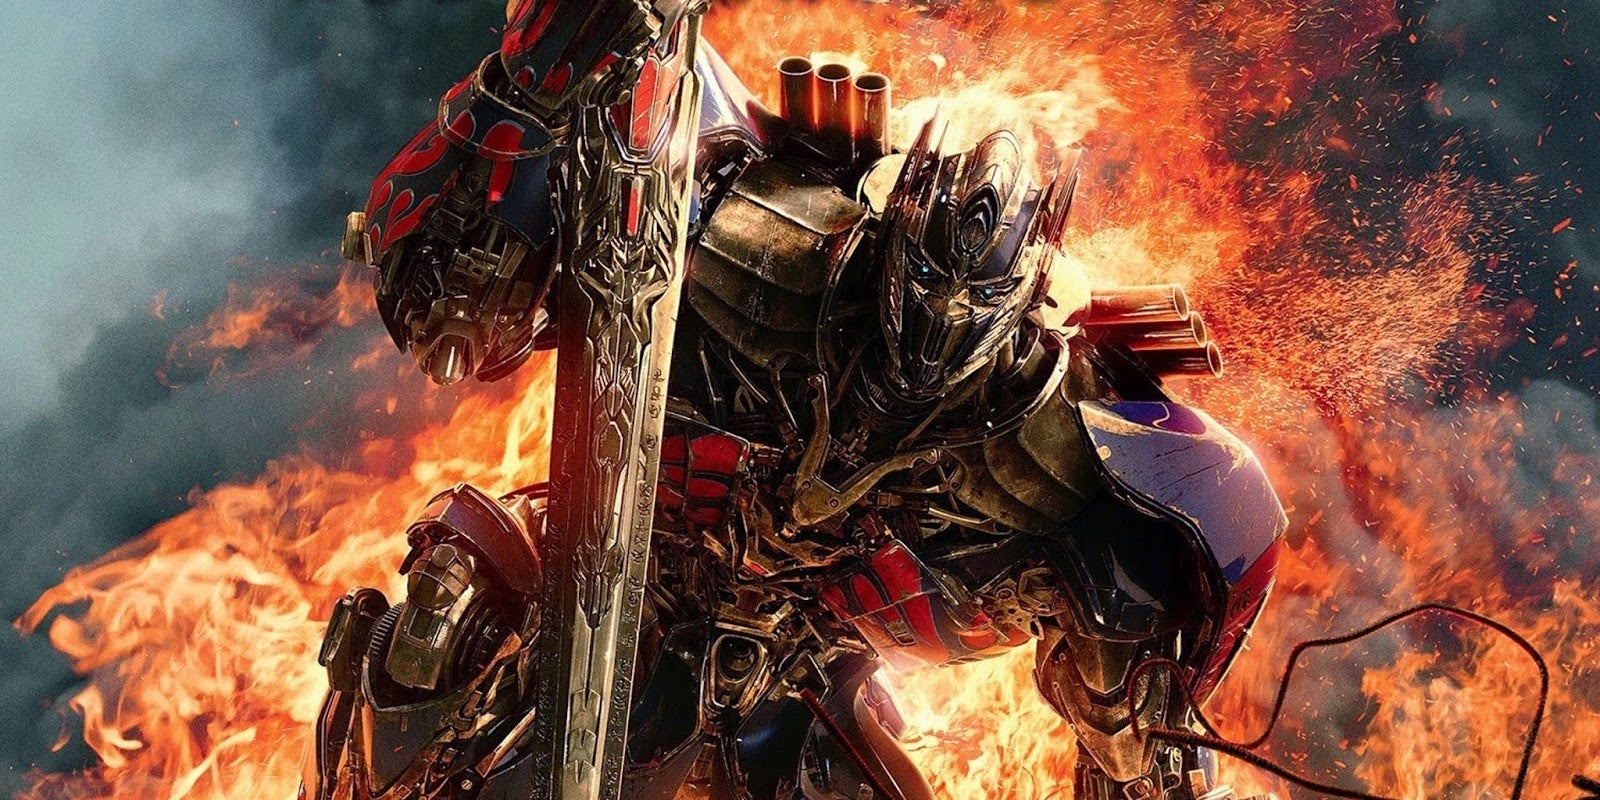 Transformers: The Last Knight: The Spoiler FAQ